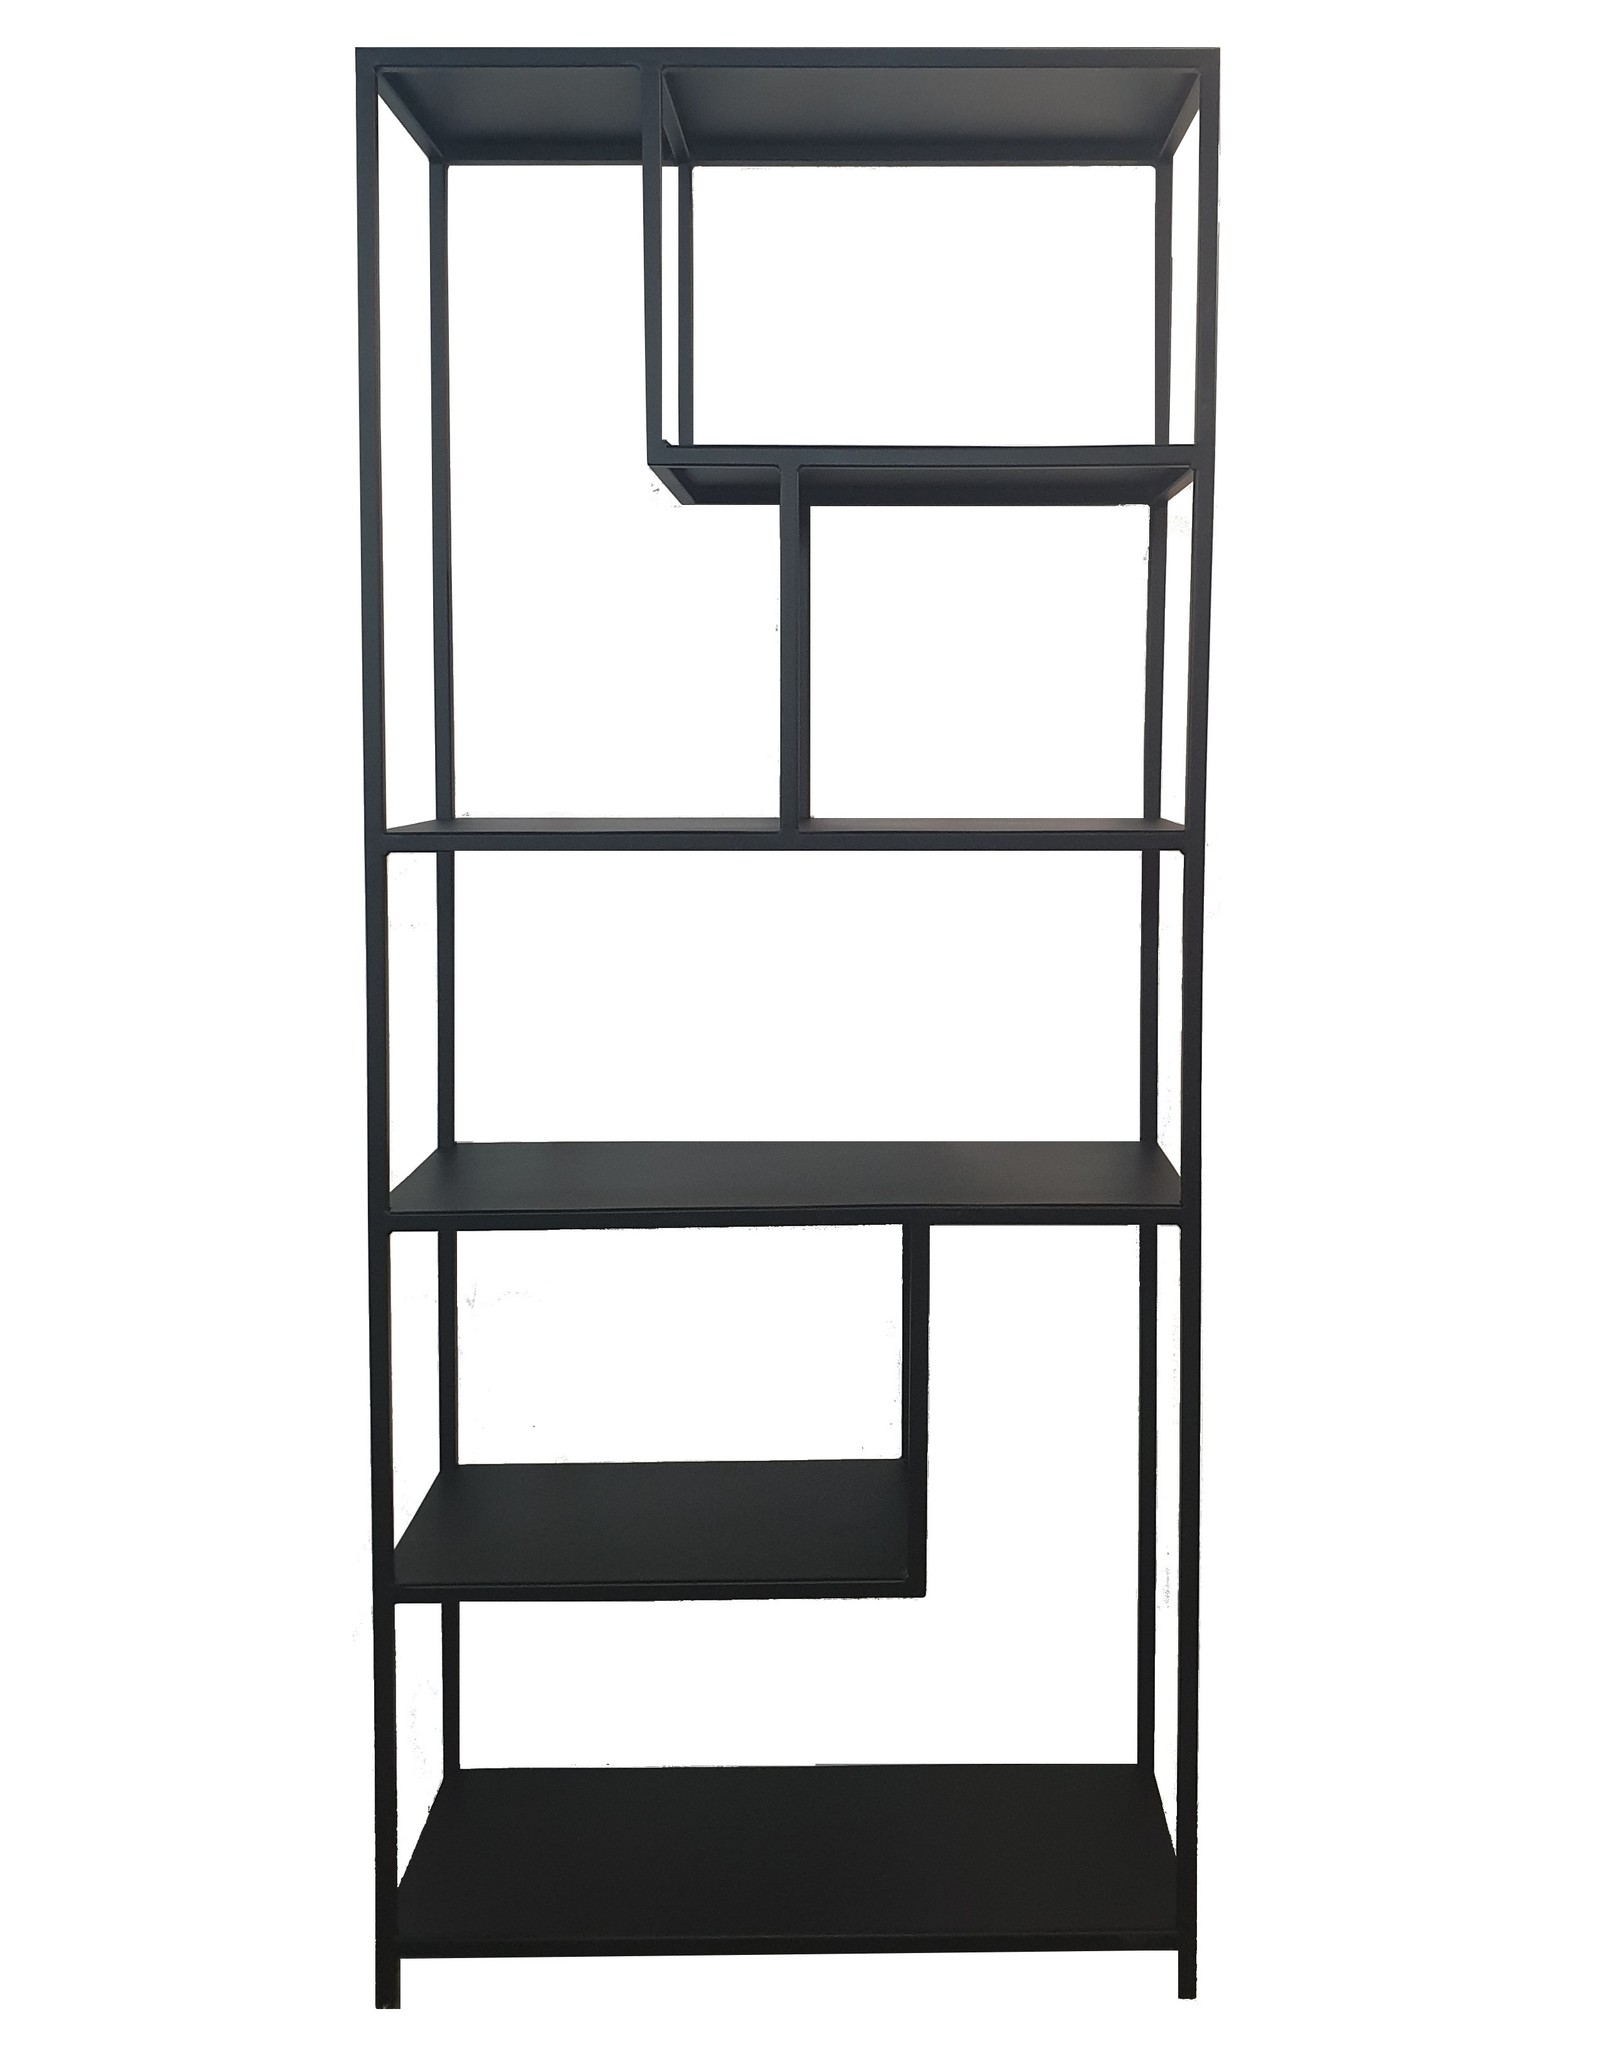 Stoer Metaal iron cabinet shelf unit Spring